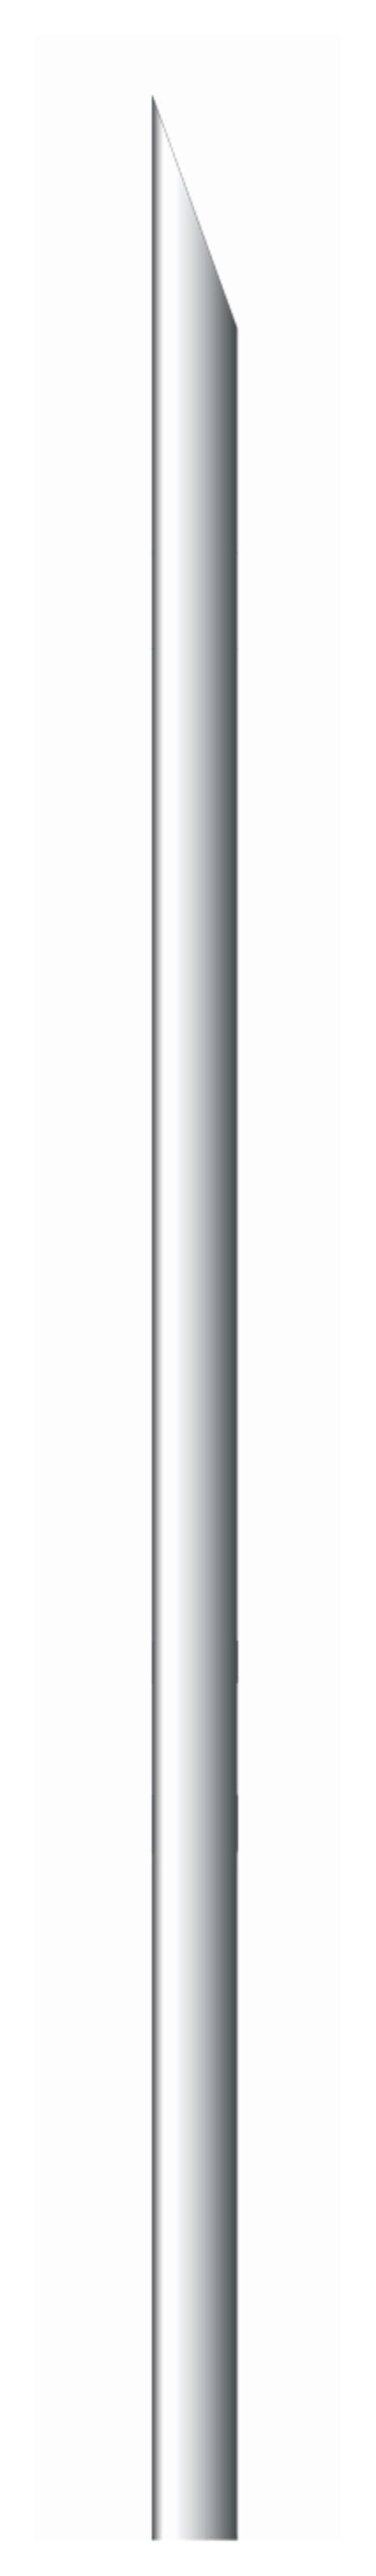 SGE Guided Plunger Syringes:Syringes and Needles:Syringes and Syringes